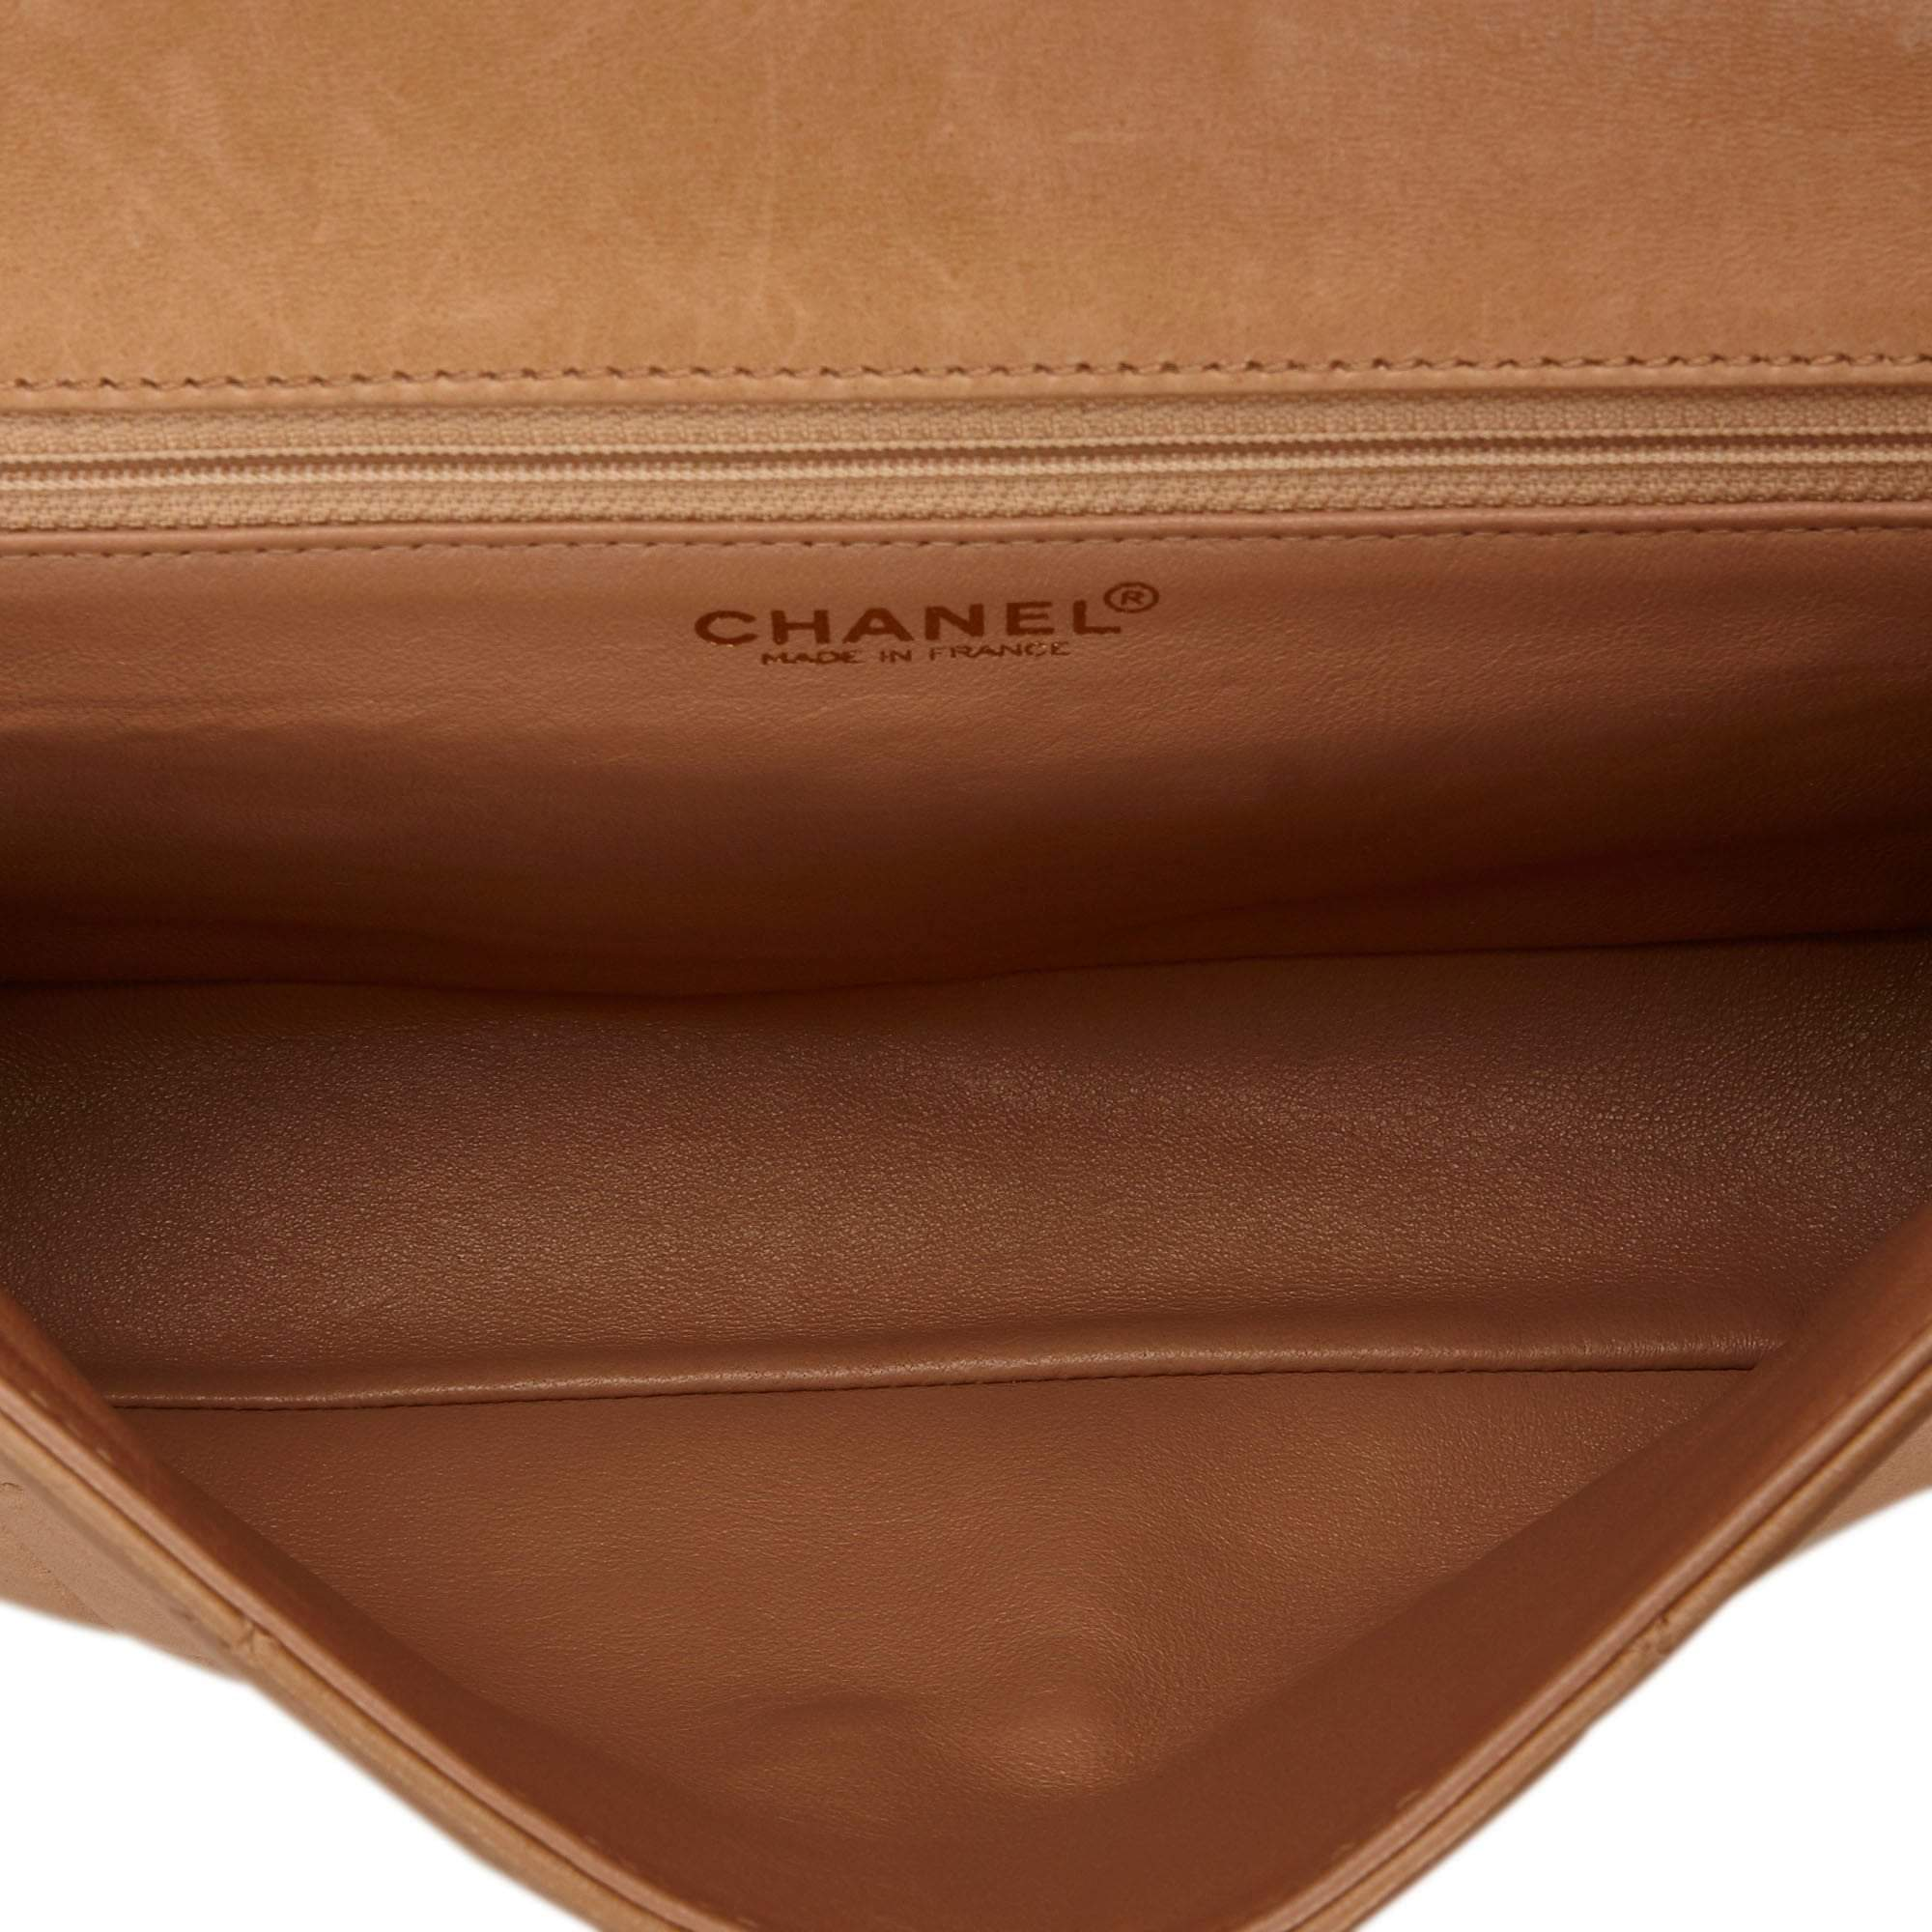 Vintage Chanel Medium Lambskin Leather Flap Bag